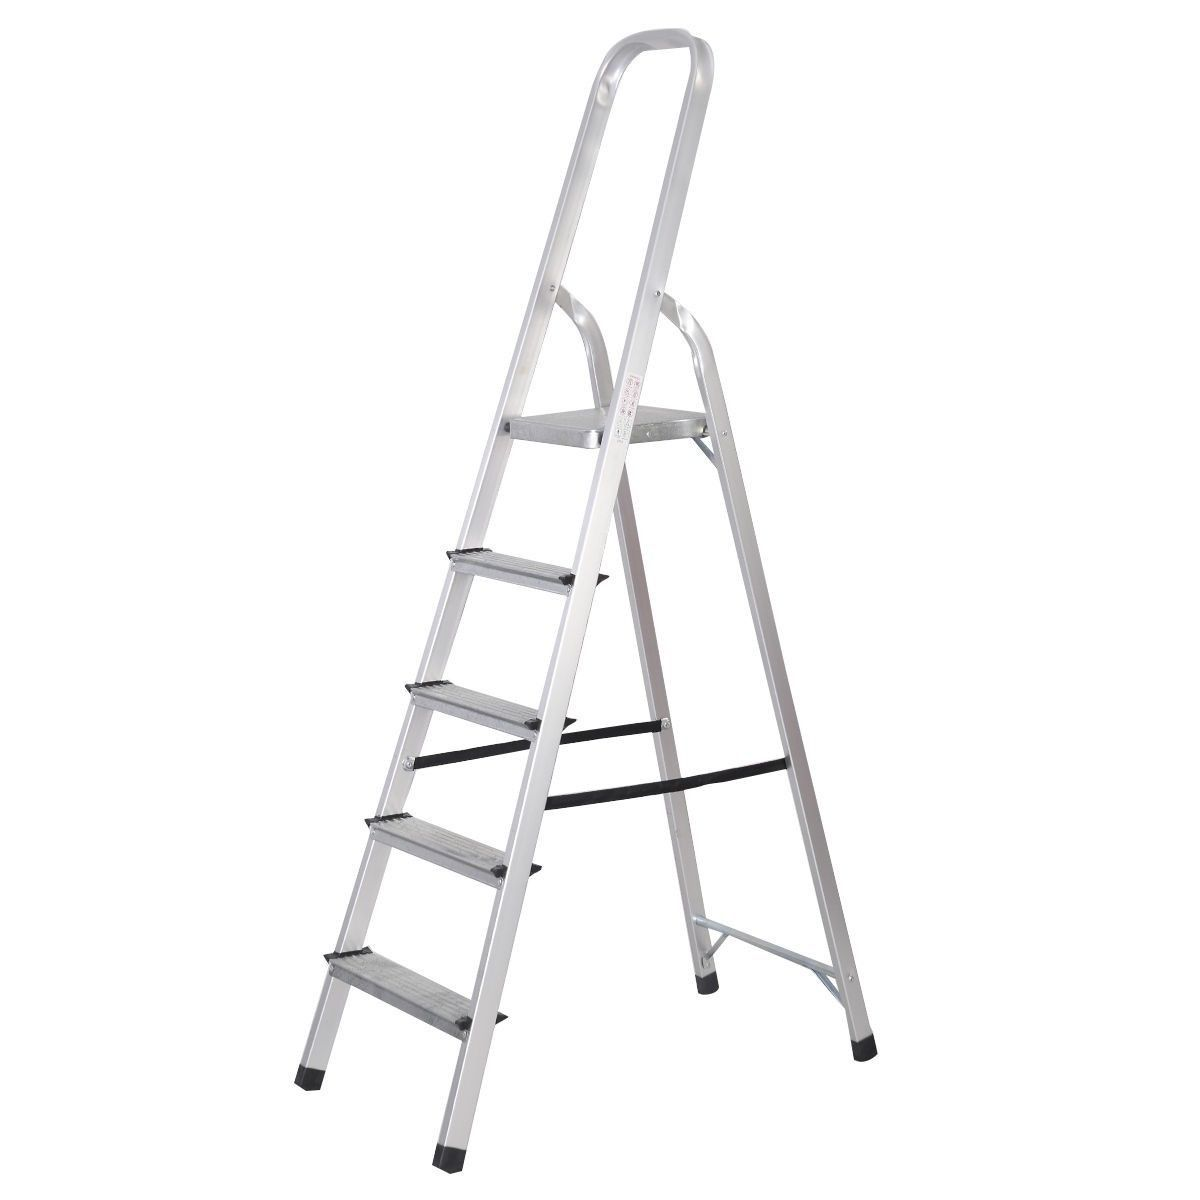 Our 5 Step Ladder With A Sturdy Construction Which Provides A Comfortable Standing Platform This Ladder Will Make A Handy Ad Step Ladders Ladder 5 Step Ladder